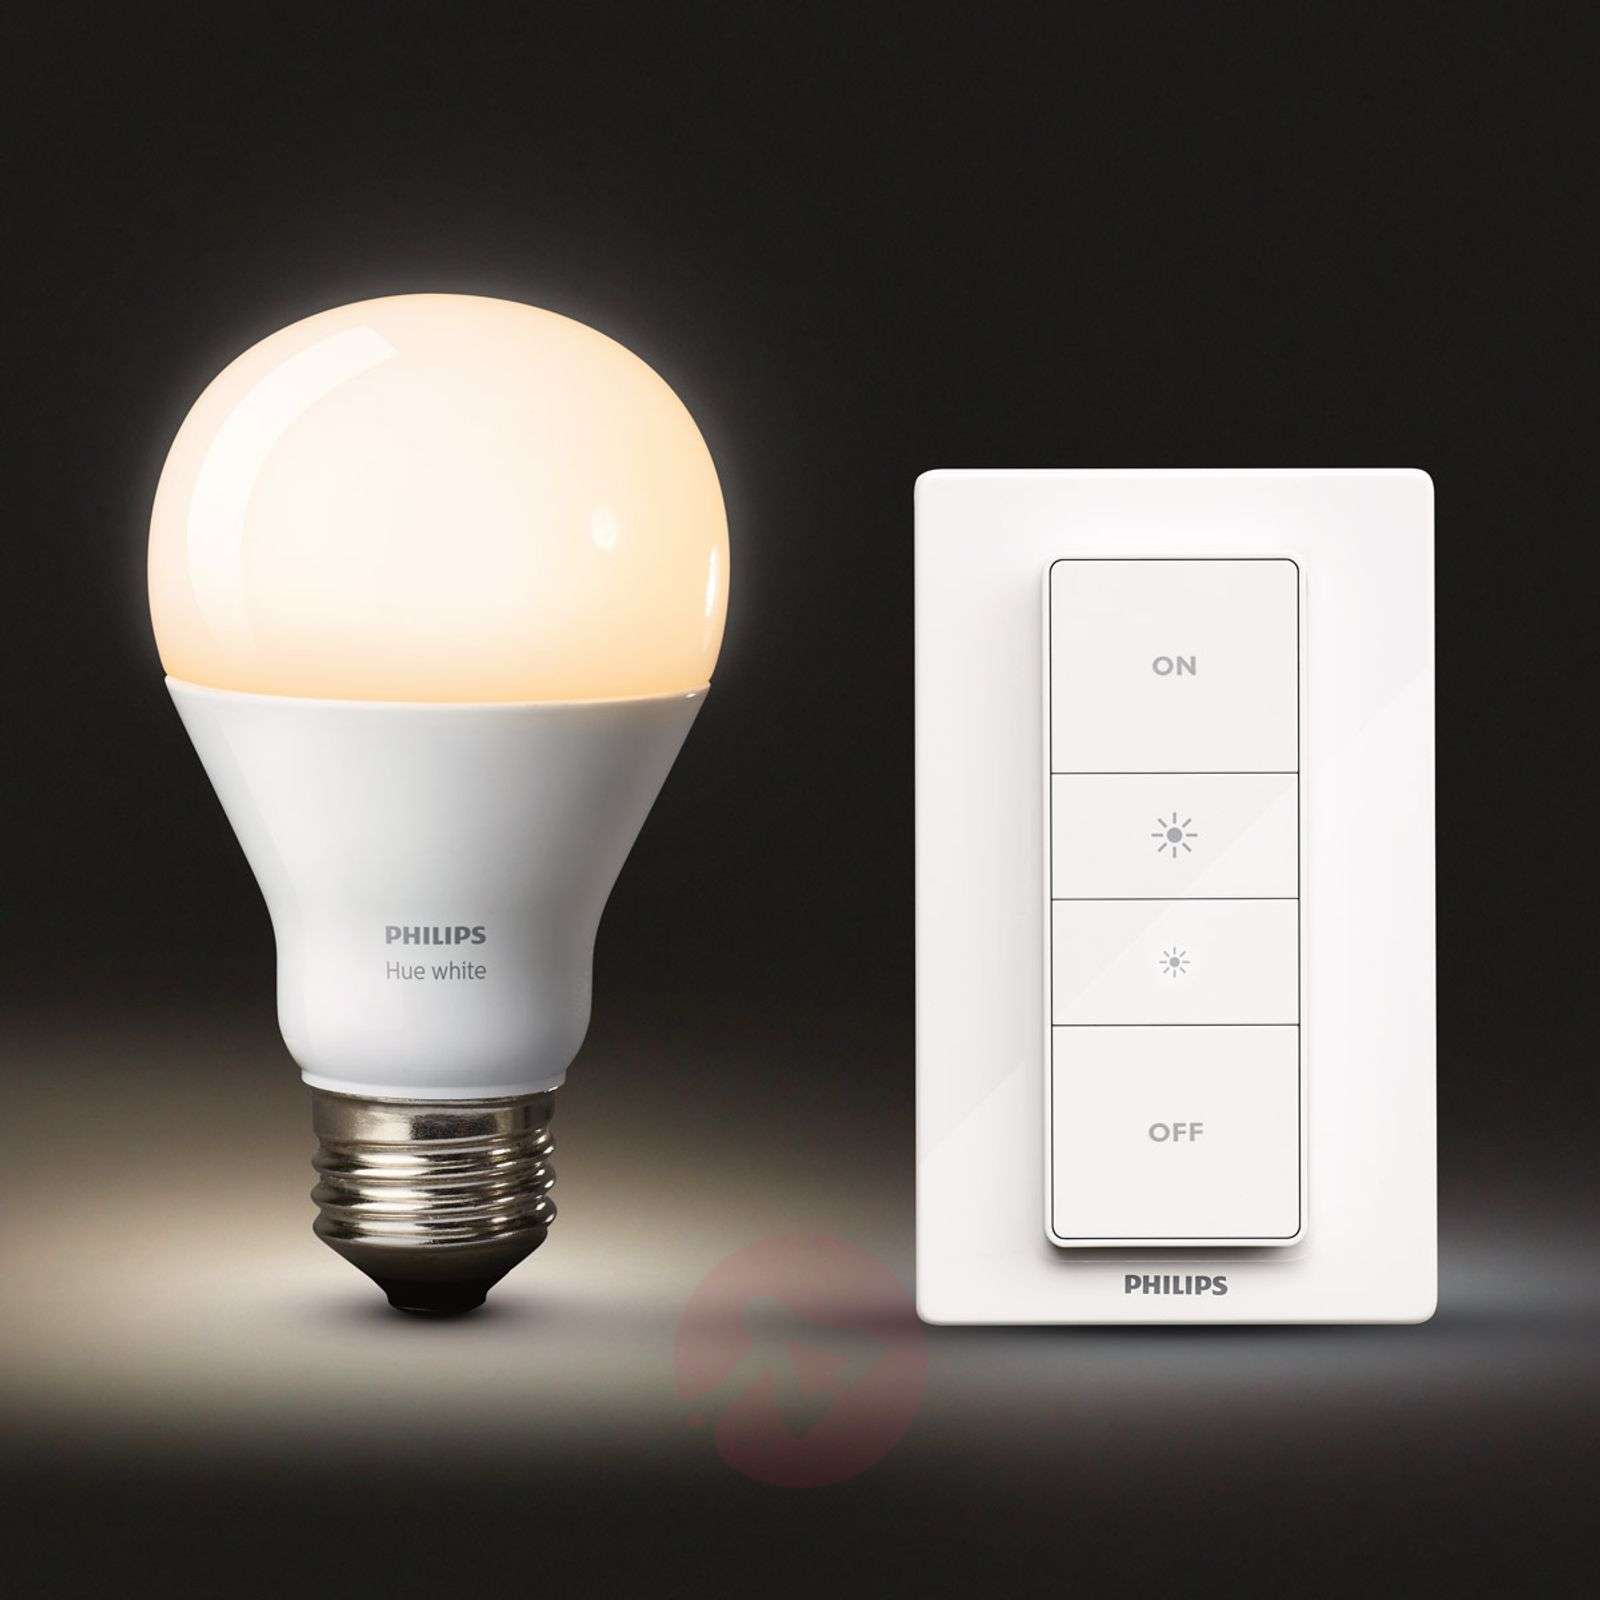 Philips Hue wireless dimming kit 9.5W E27 | Lights.co.uk